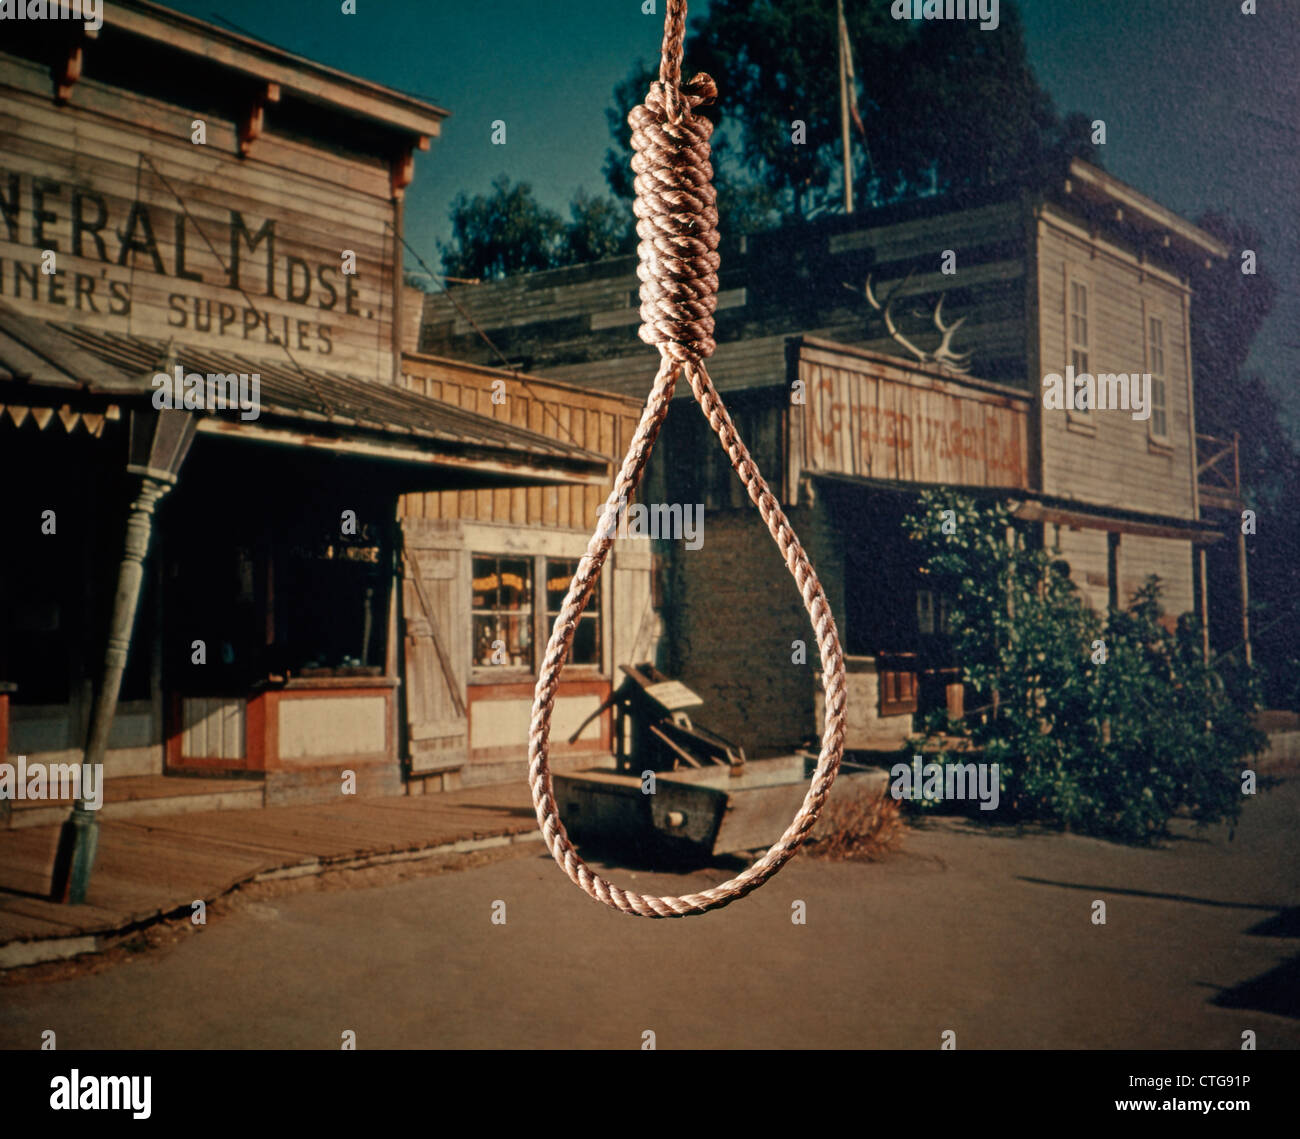 1960s ROPE HANGMAN NOOSE BACKGROUND OLD WEST COWBOY TOWN LYNCHING - Stock Image